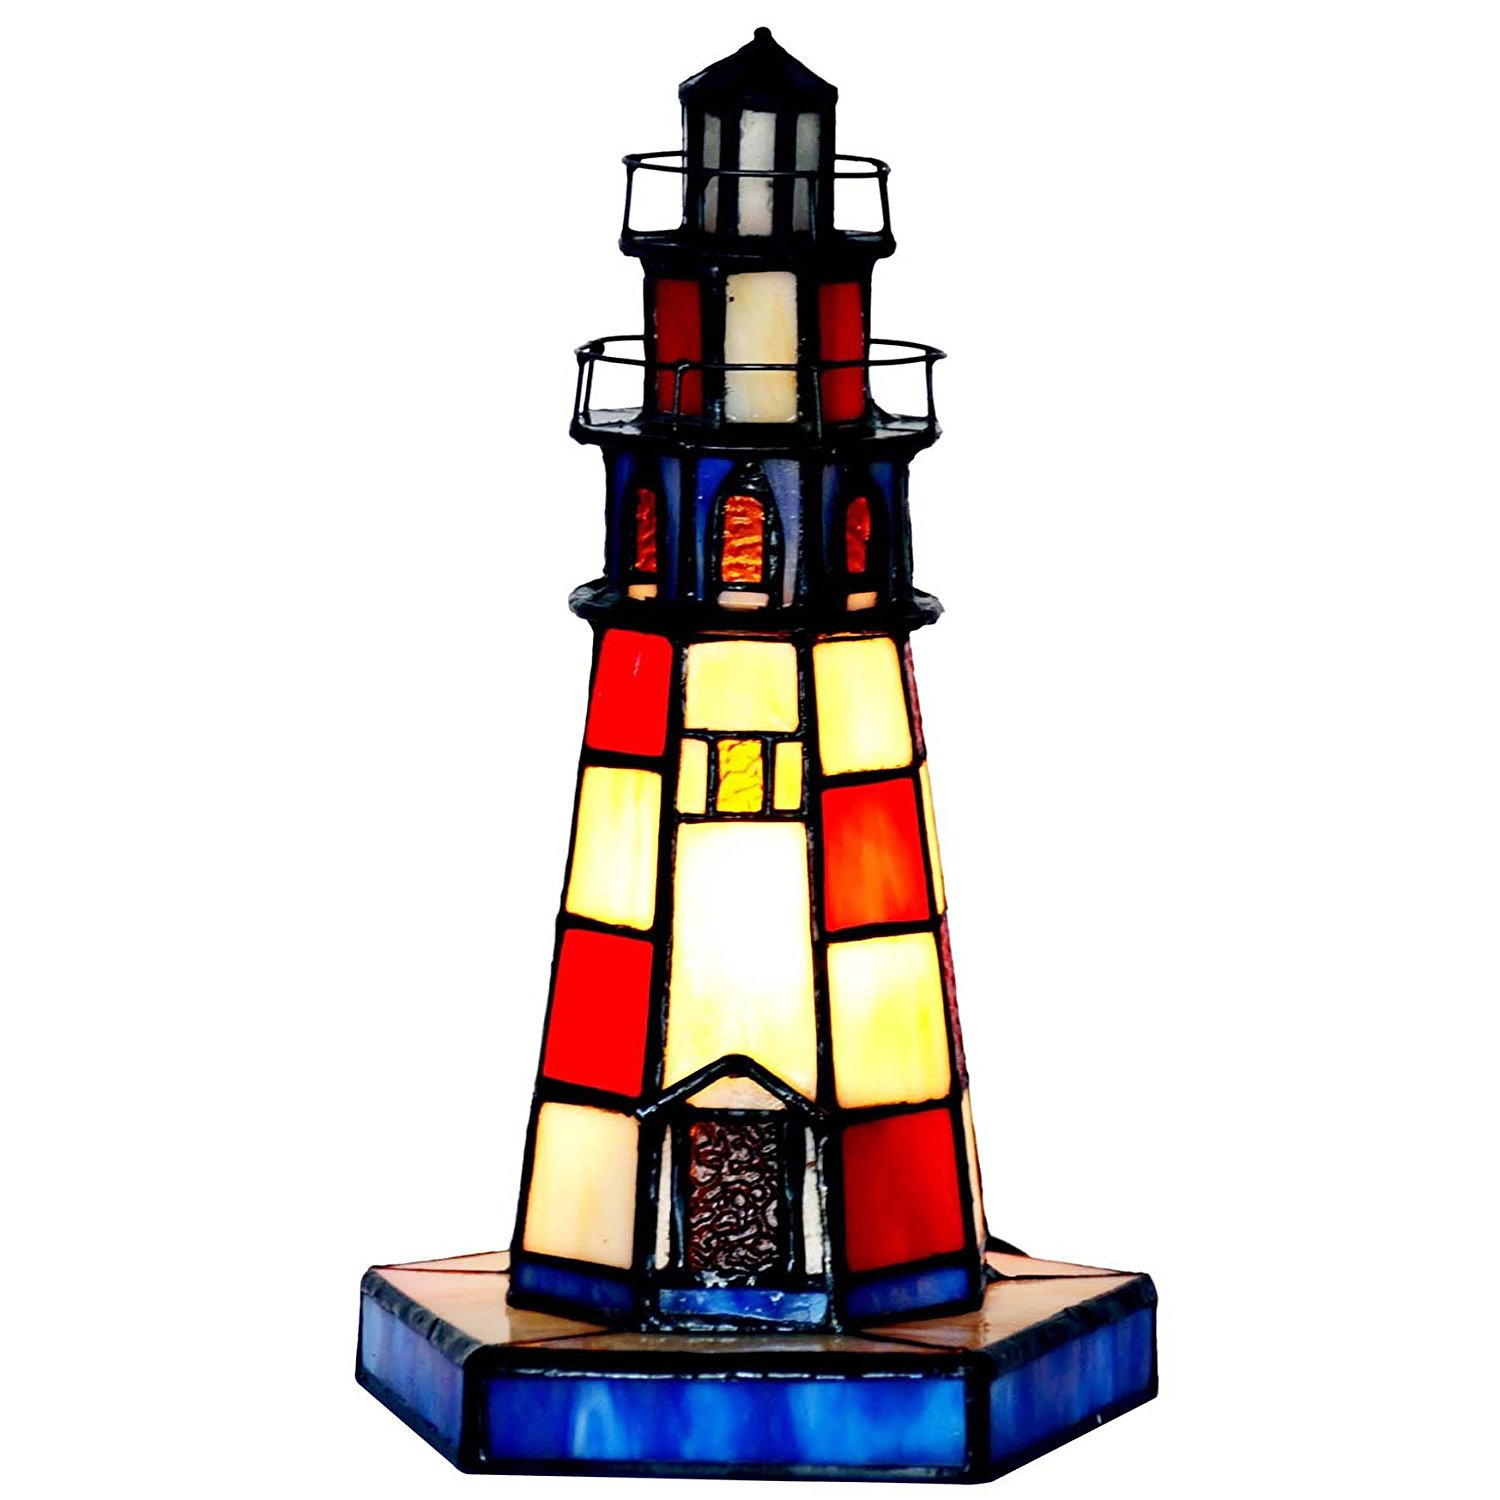 bieye inches lighthouse tiffany style stained glass accent table lamp west elm square dining skinny side antique oak small home decor accessories outdoor wood patio furniture